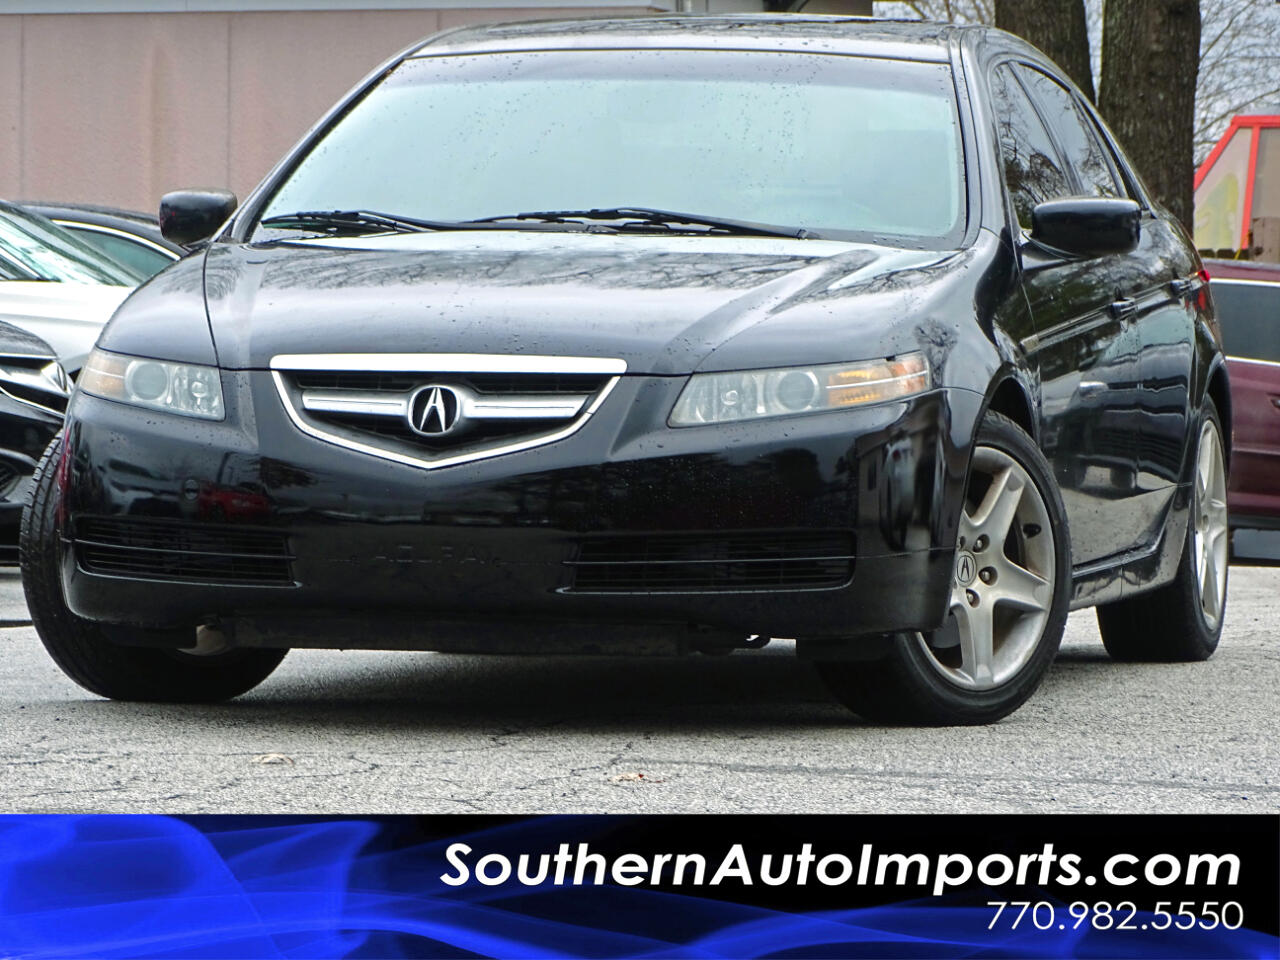 2004 Acura TL 6 Speed Manual w/Tech Package